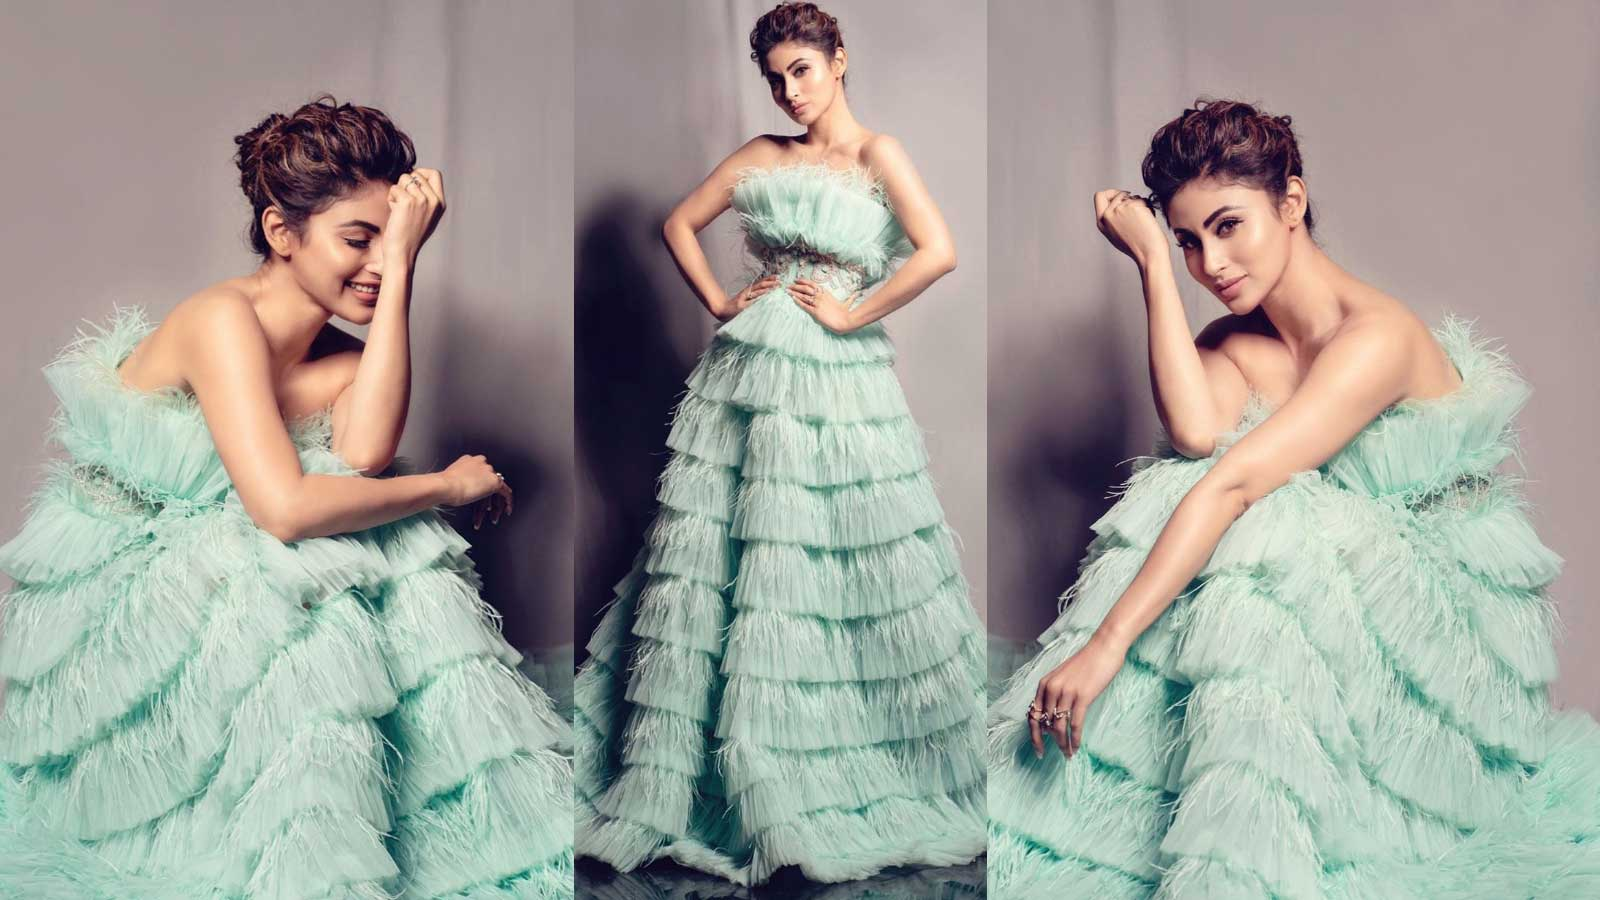 mouni-roy-will-leave-you-mesmerised-with-her-latest-pictures-on-instagram